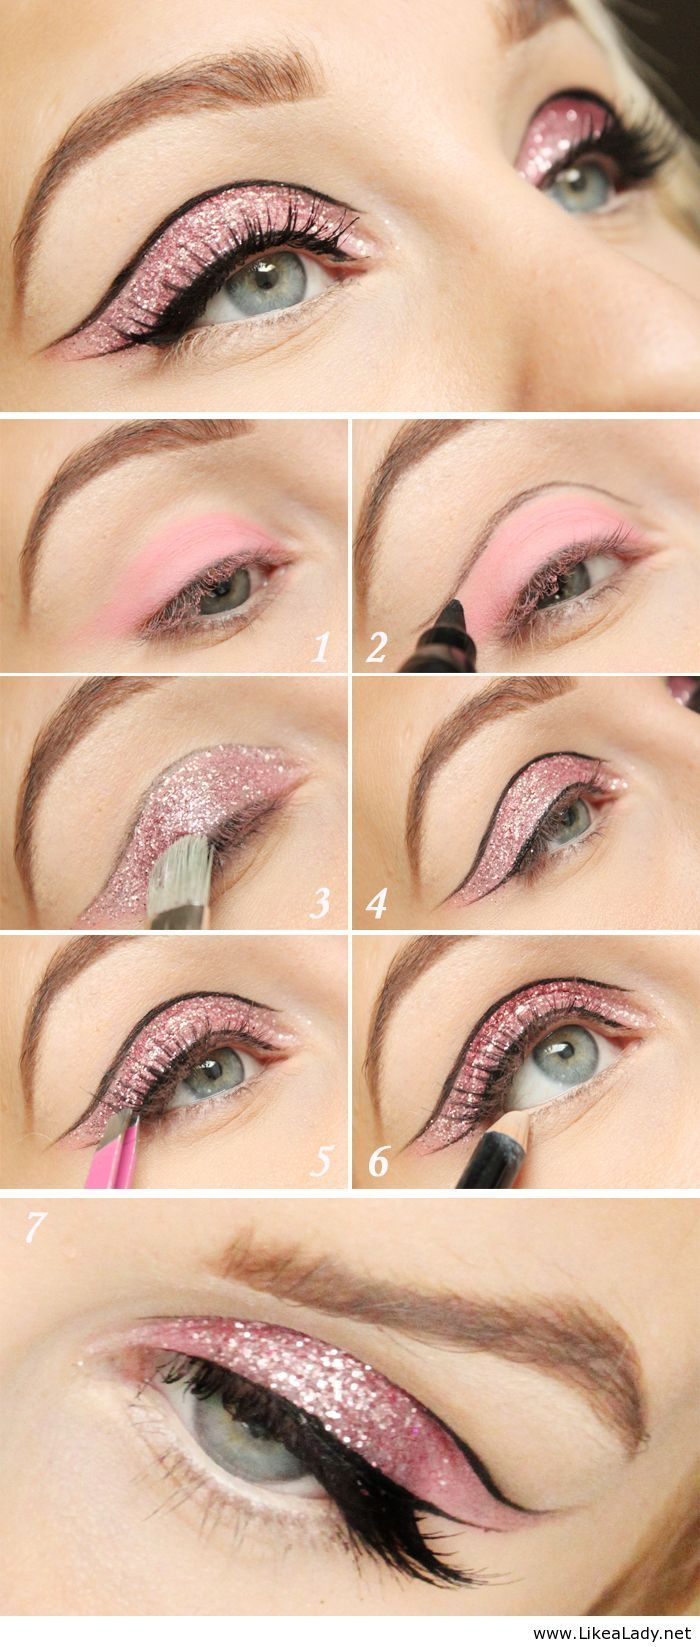 Fashionable Party Eye Makeup Tutorials for 2015